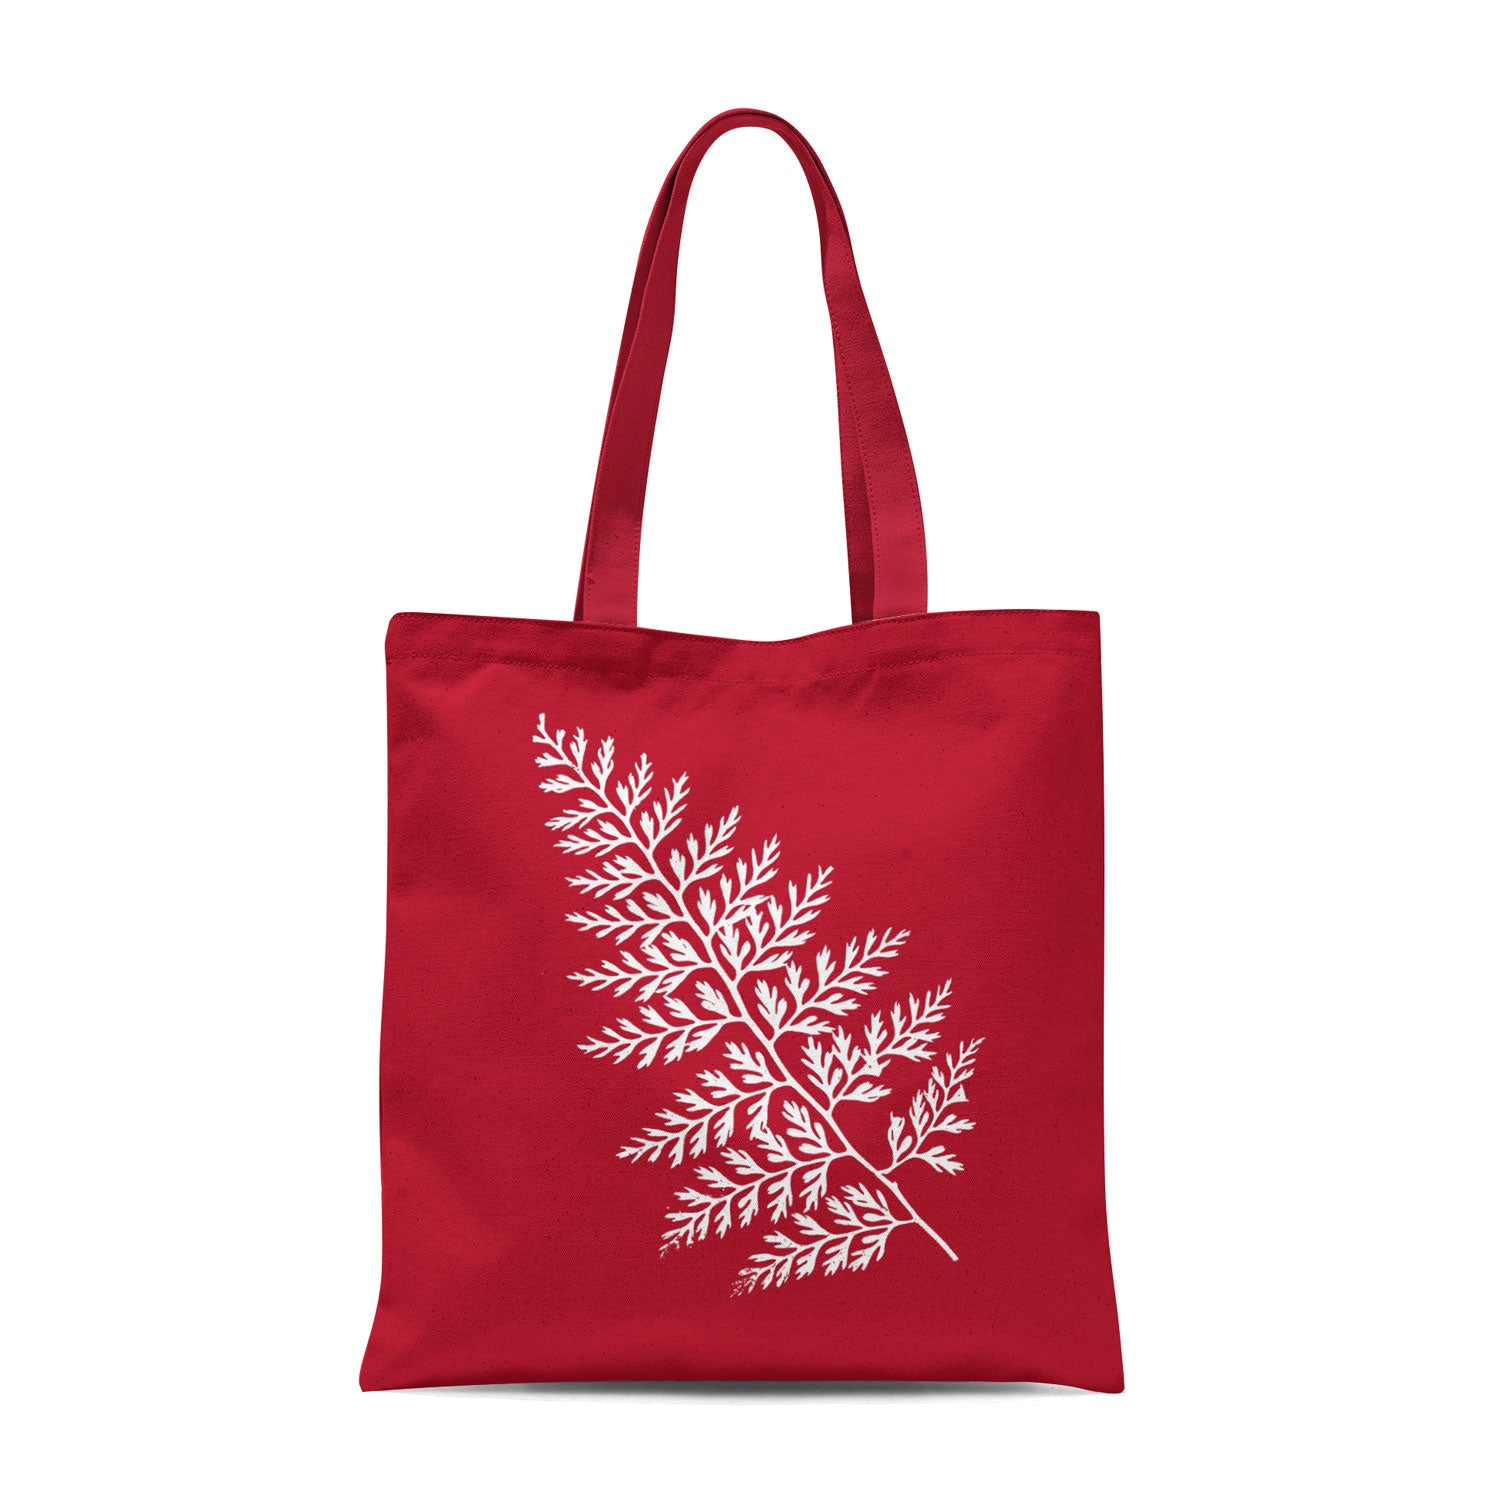 red tote bag with white leaf design